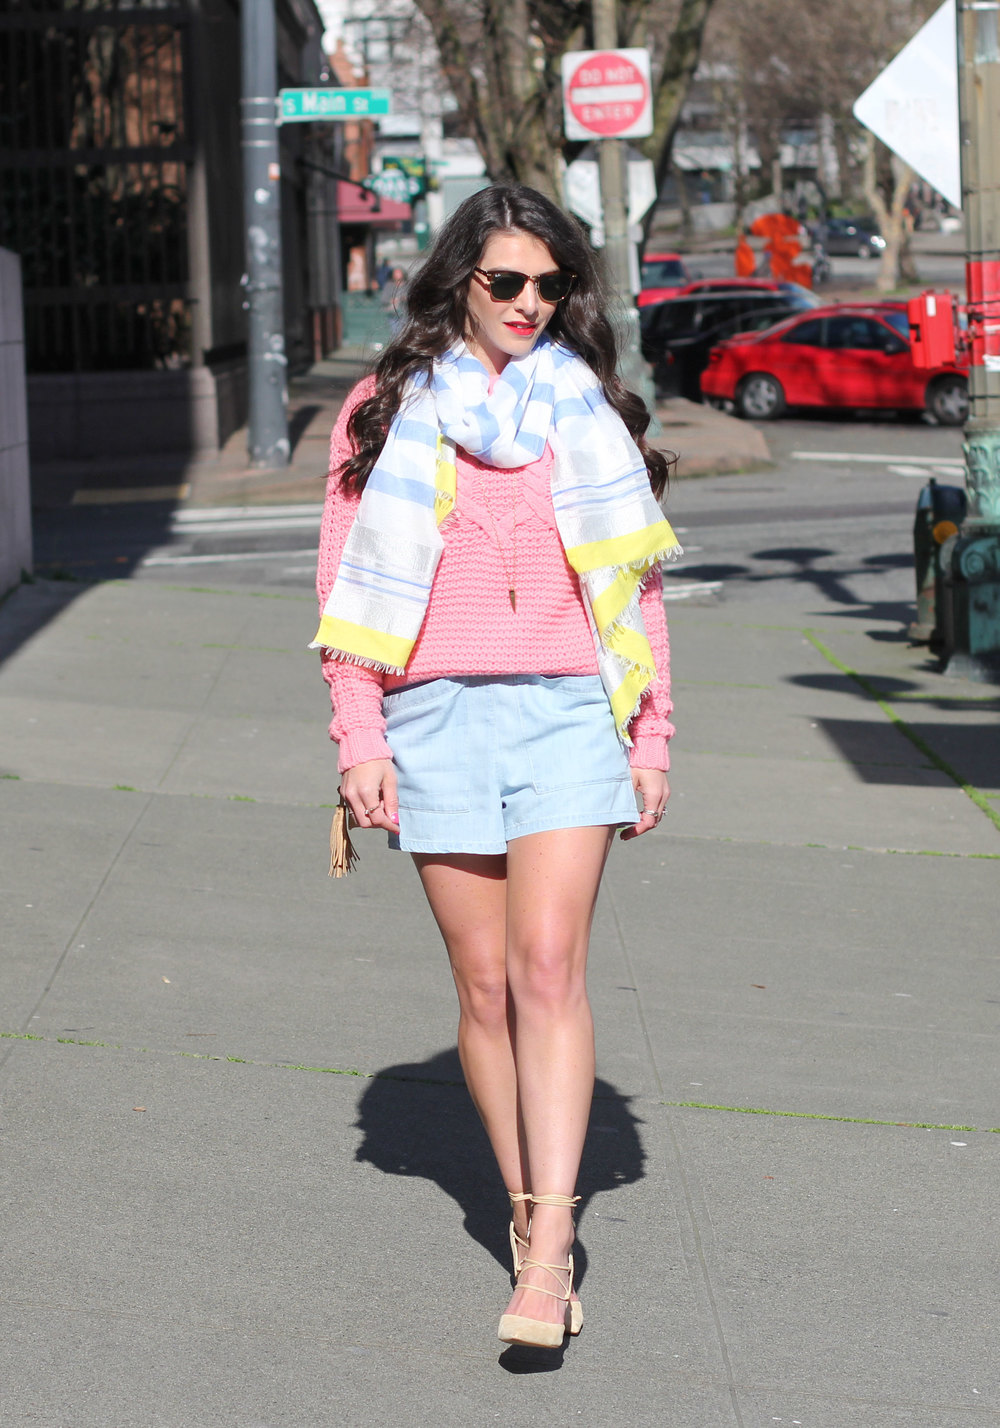 How To Layer For Spring, BDG Chambray Romper, Pink Cropped Sweater, Sam Edelman Dayna Pumps, Spring Outfit